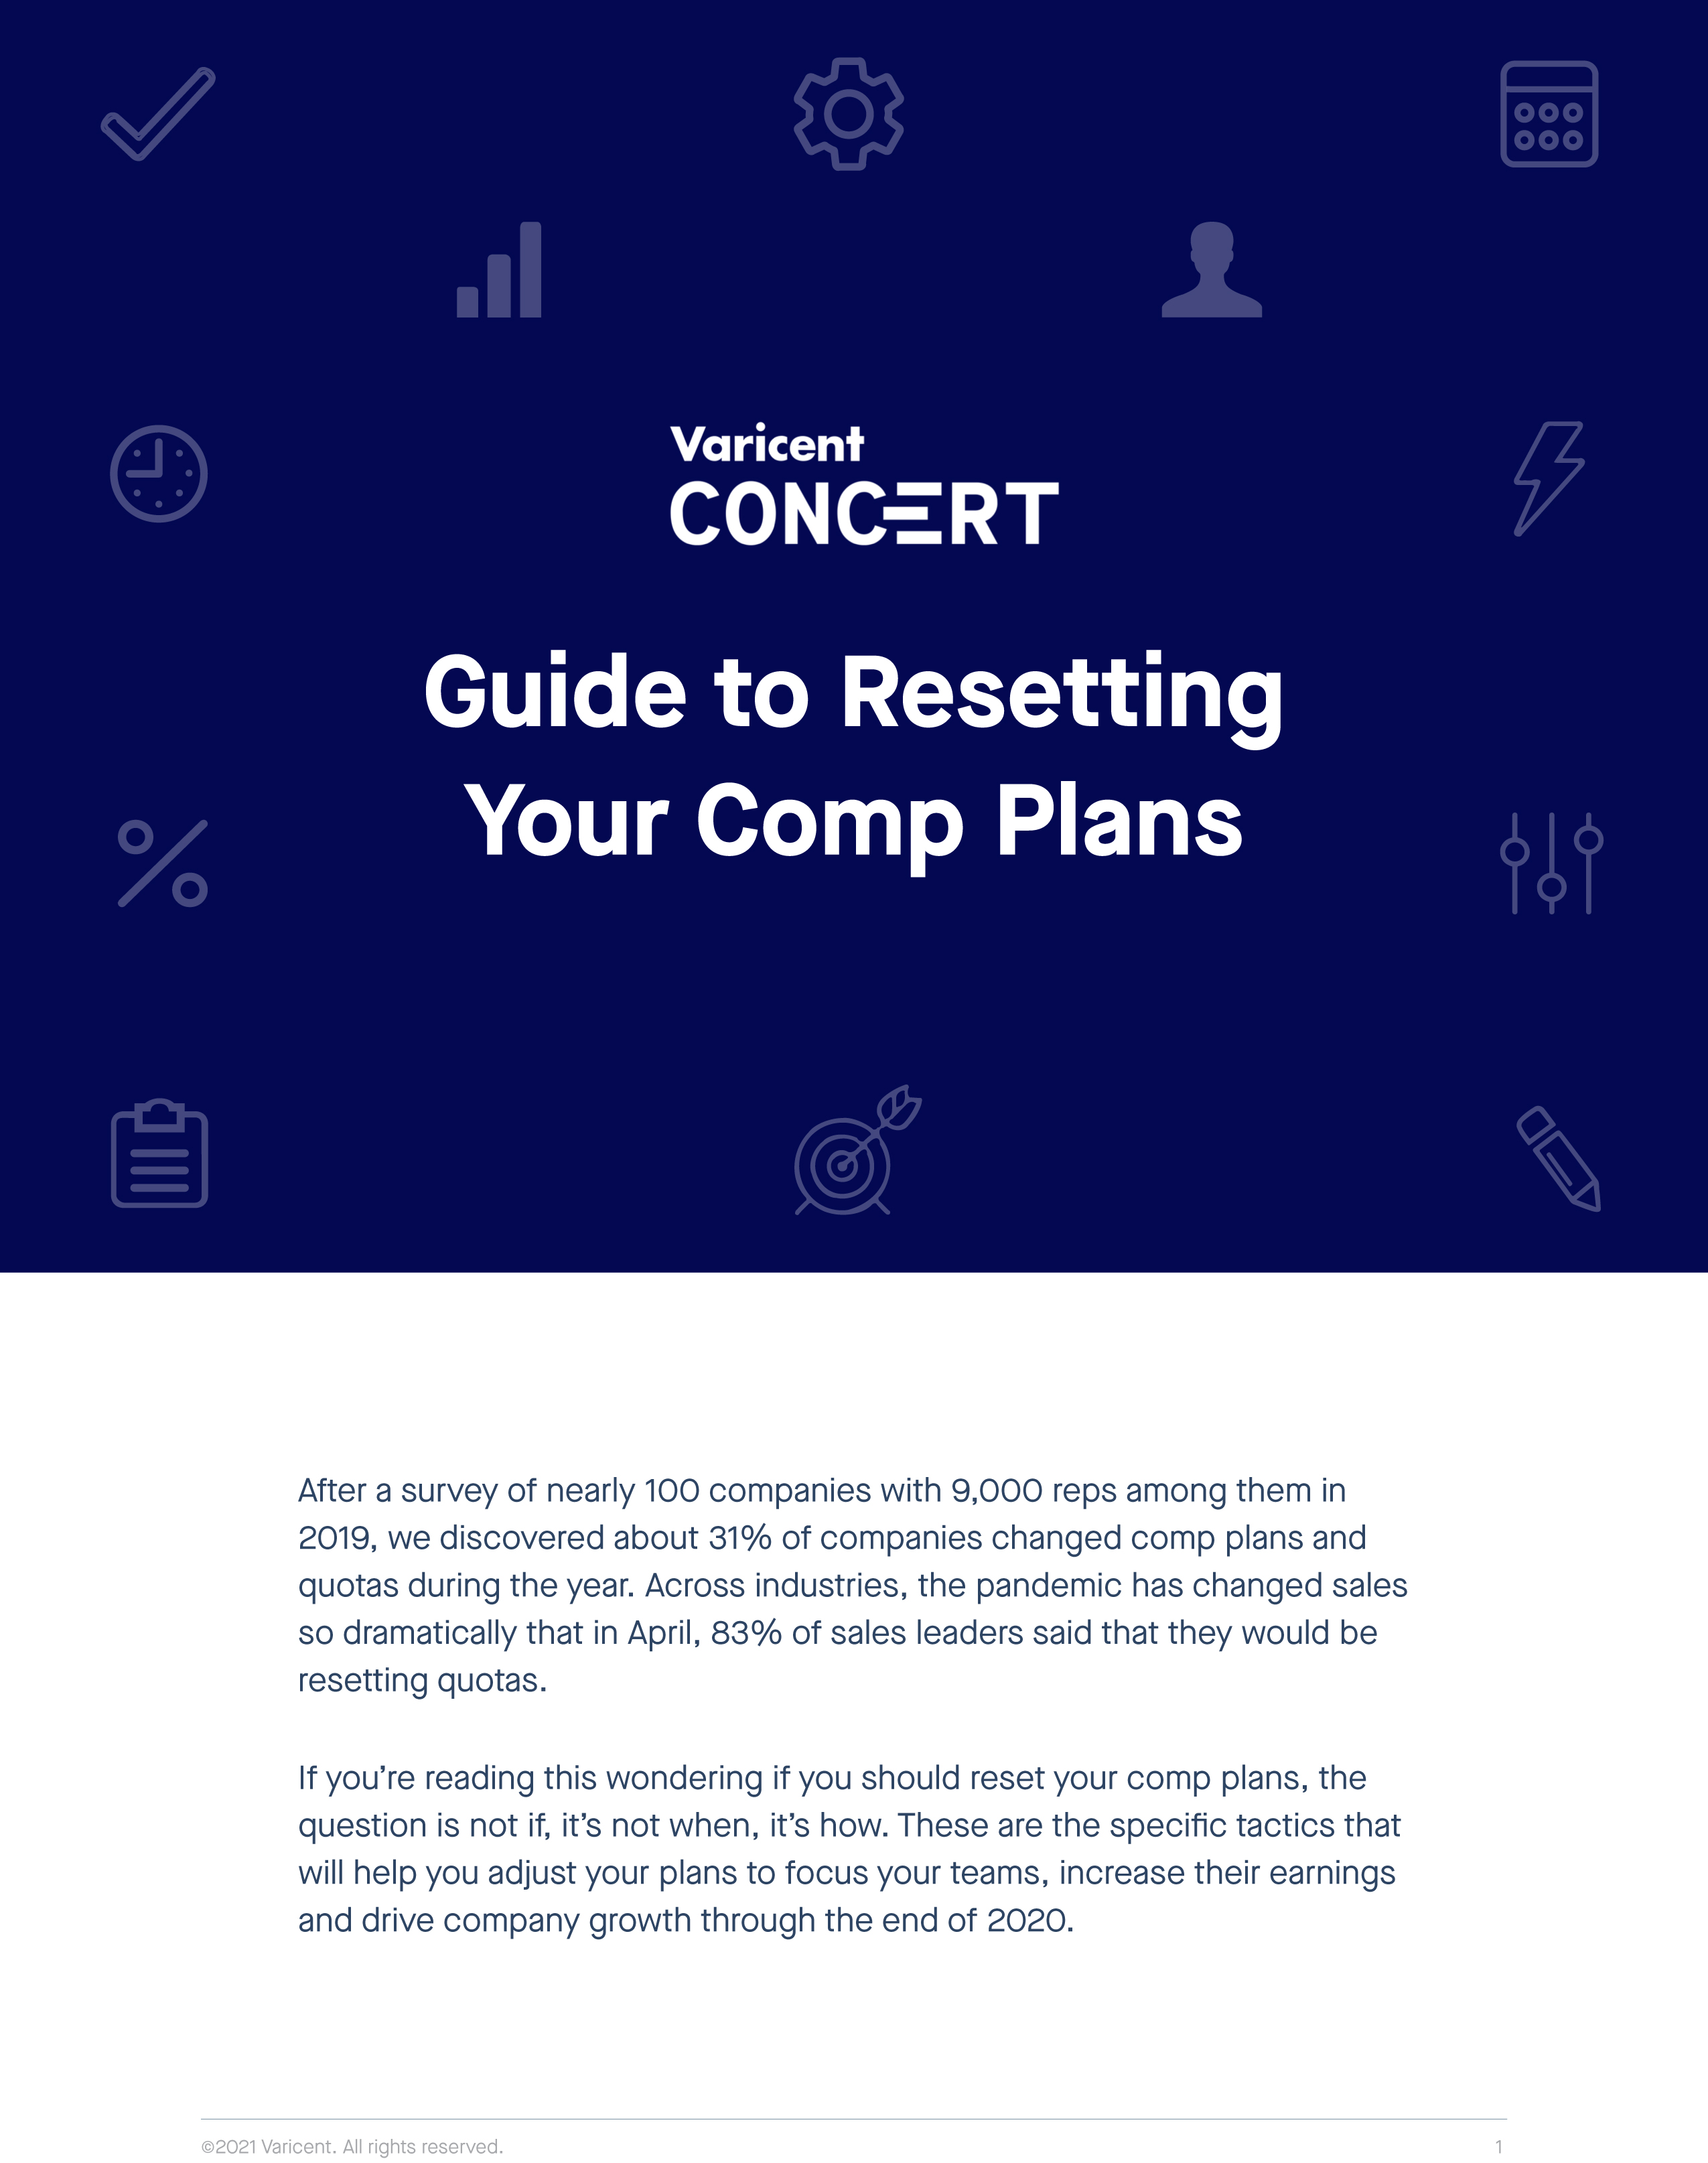 Guide to Resetting Comp Plans